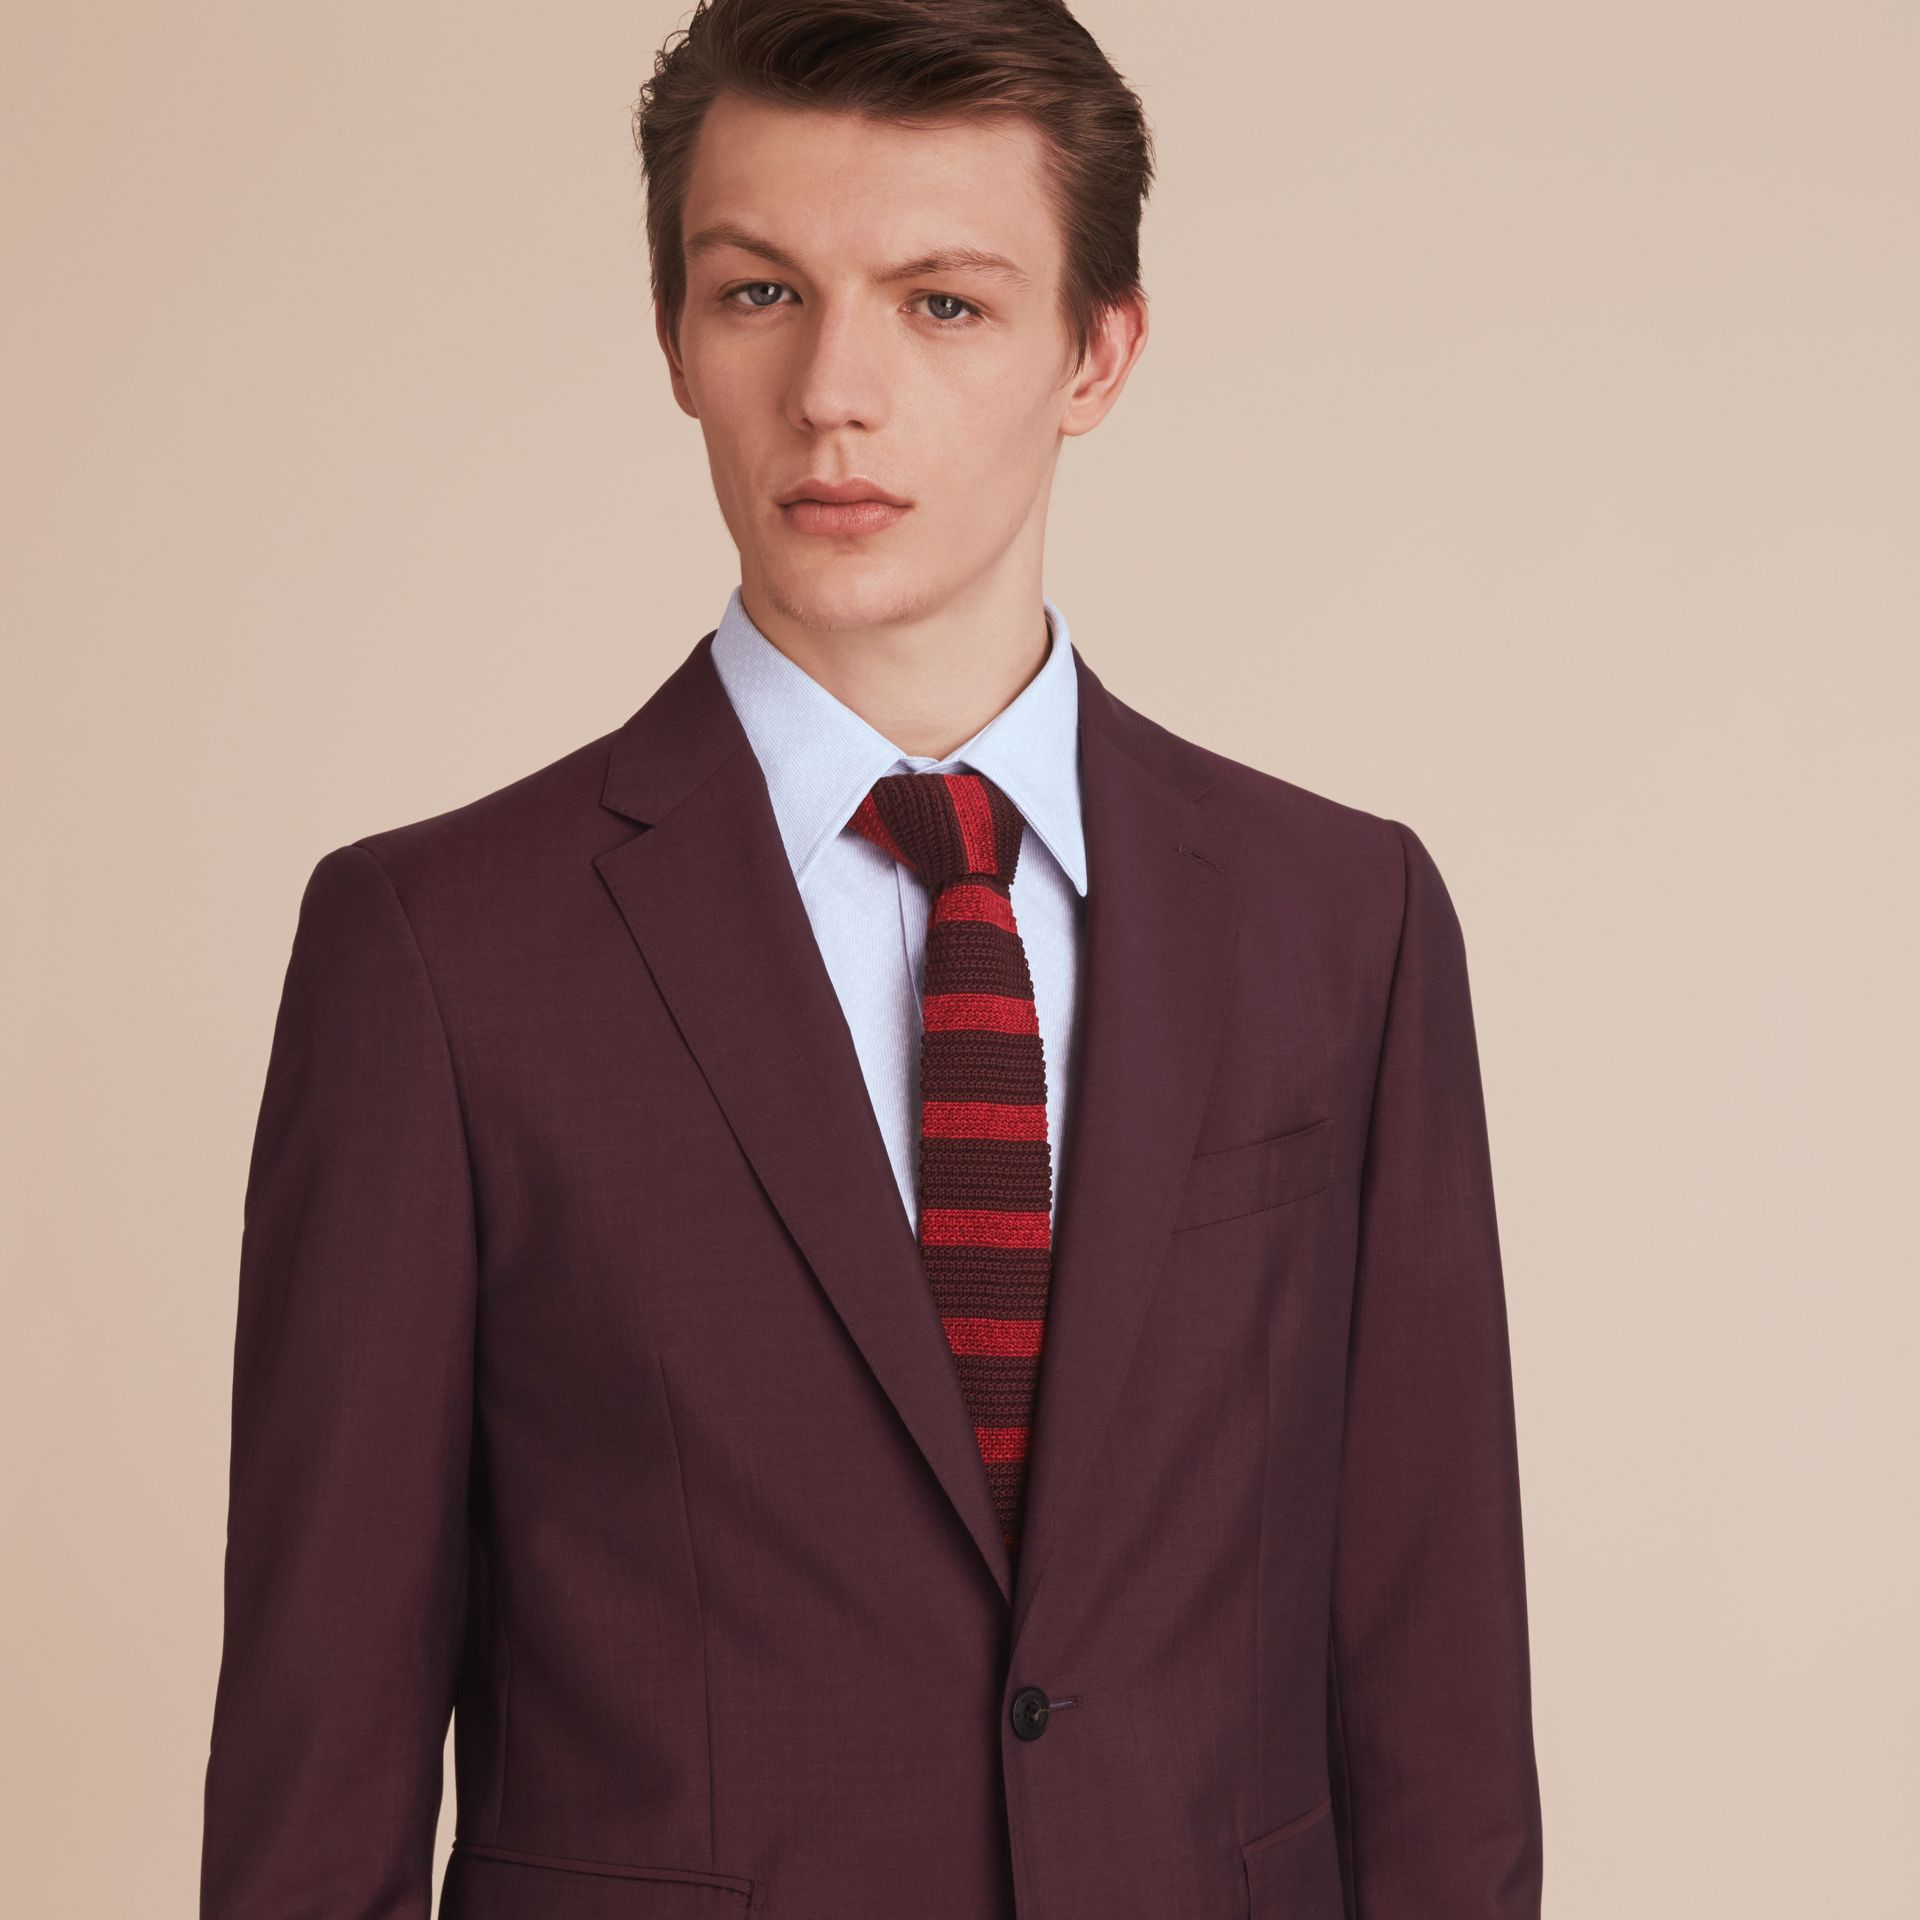 Slim Cut Two-tone Knitted Silk Tie in Burgundy - Men | Burberry Australia - gallery image 3